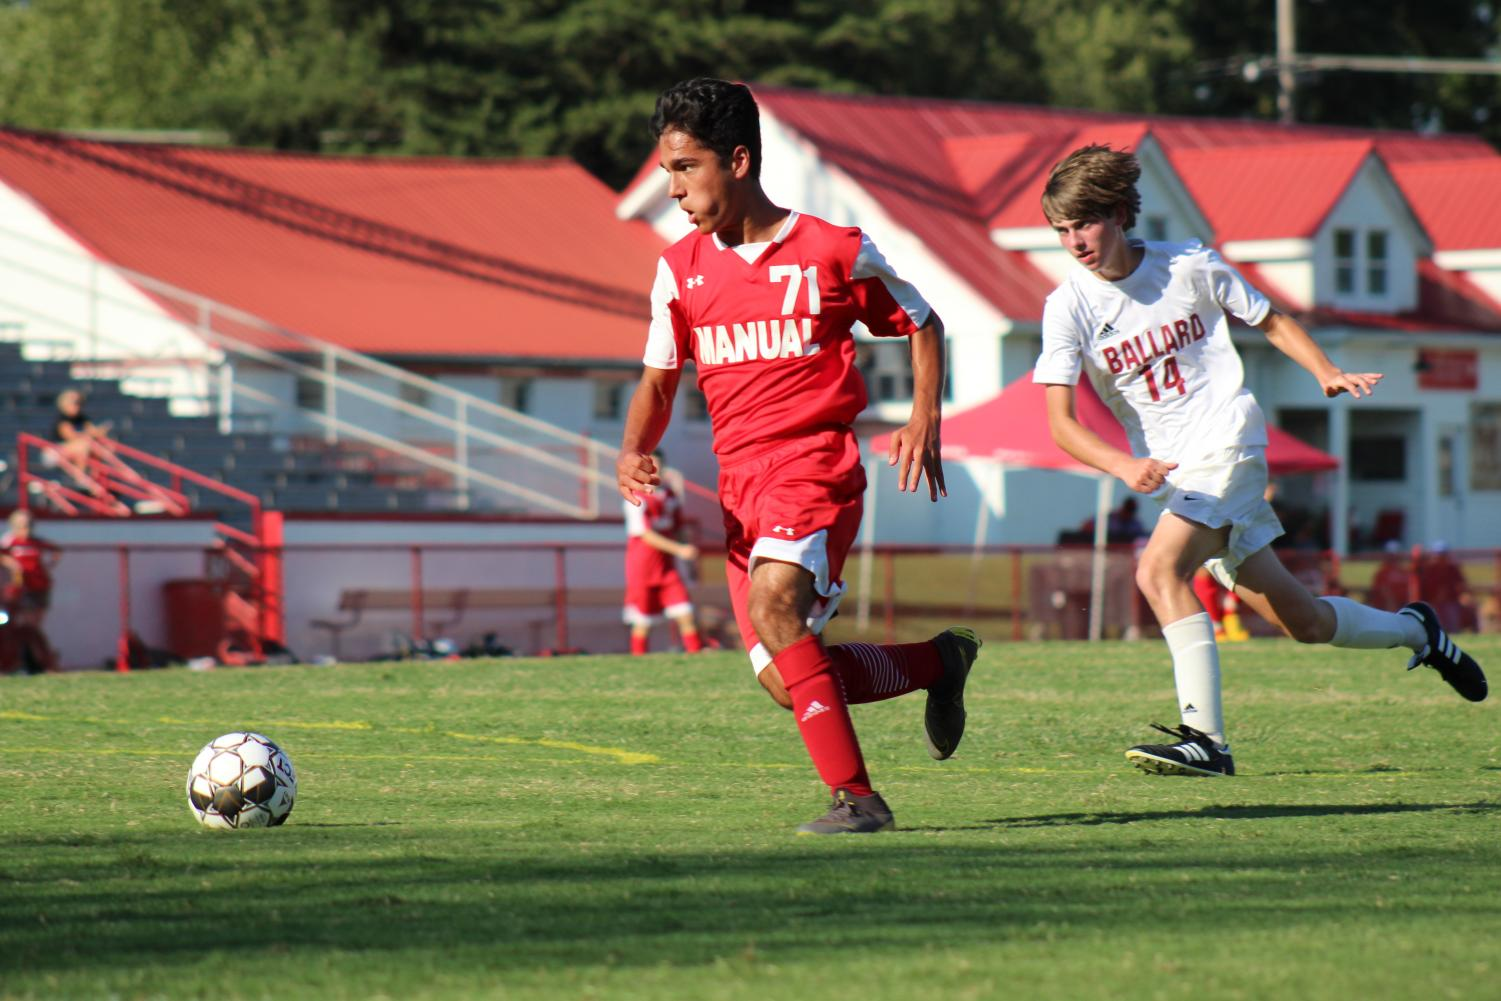 Iman Dashti (10, MST) prepares to shoot after beating a Ballard defender. Photo by Molly Gregory.